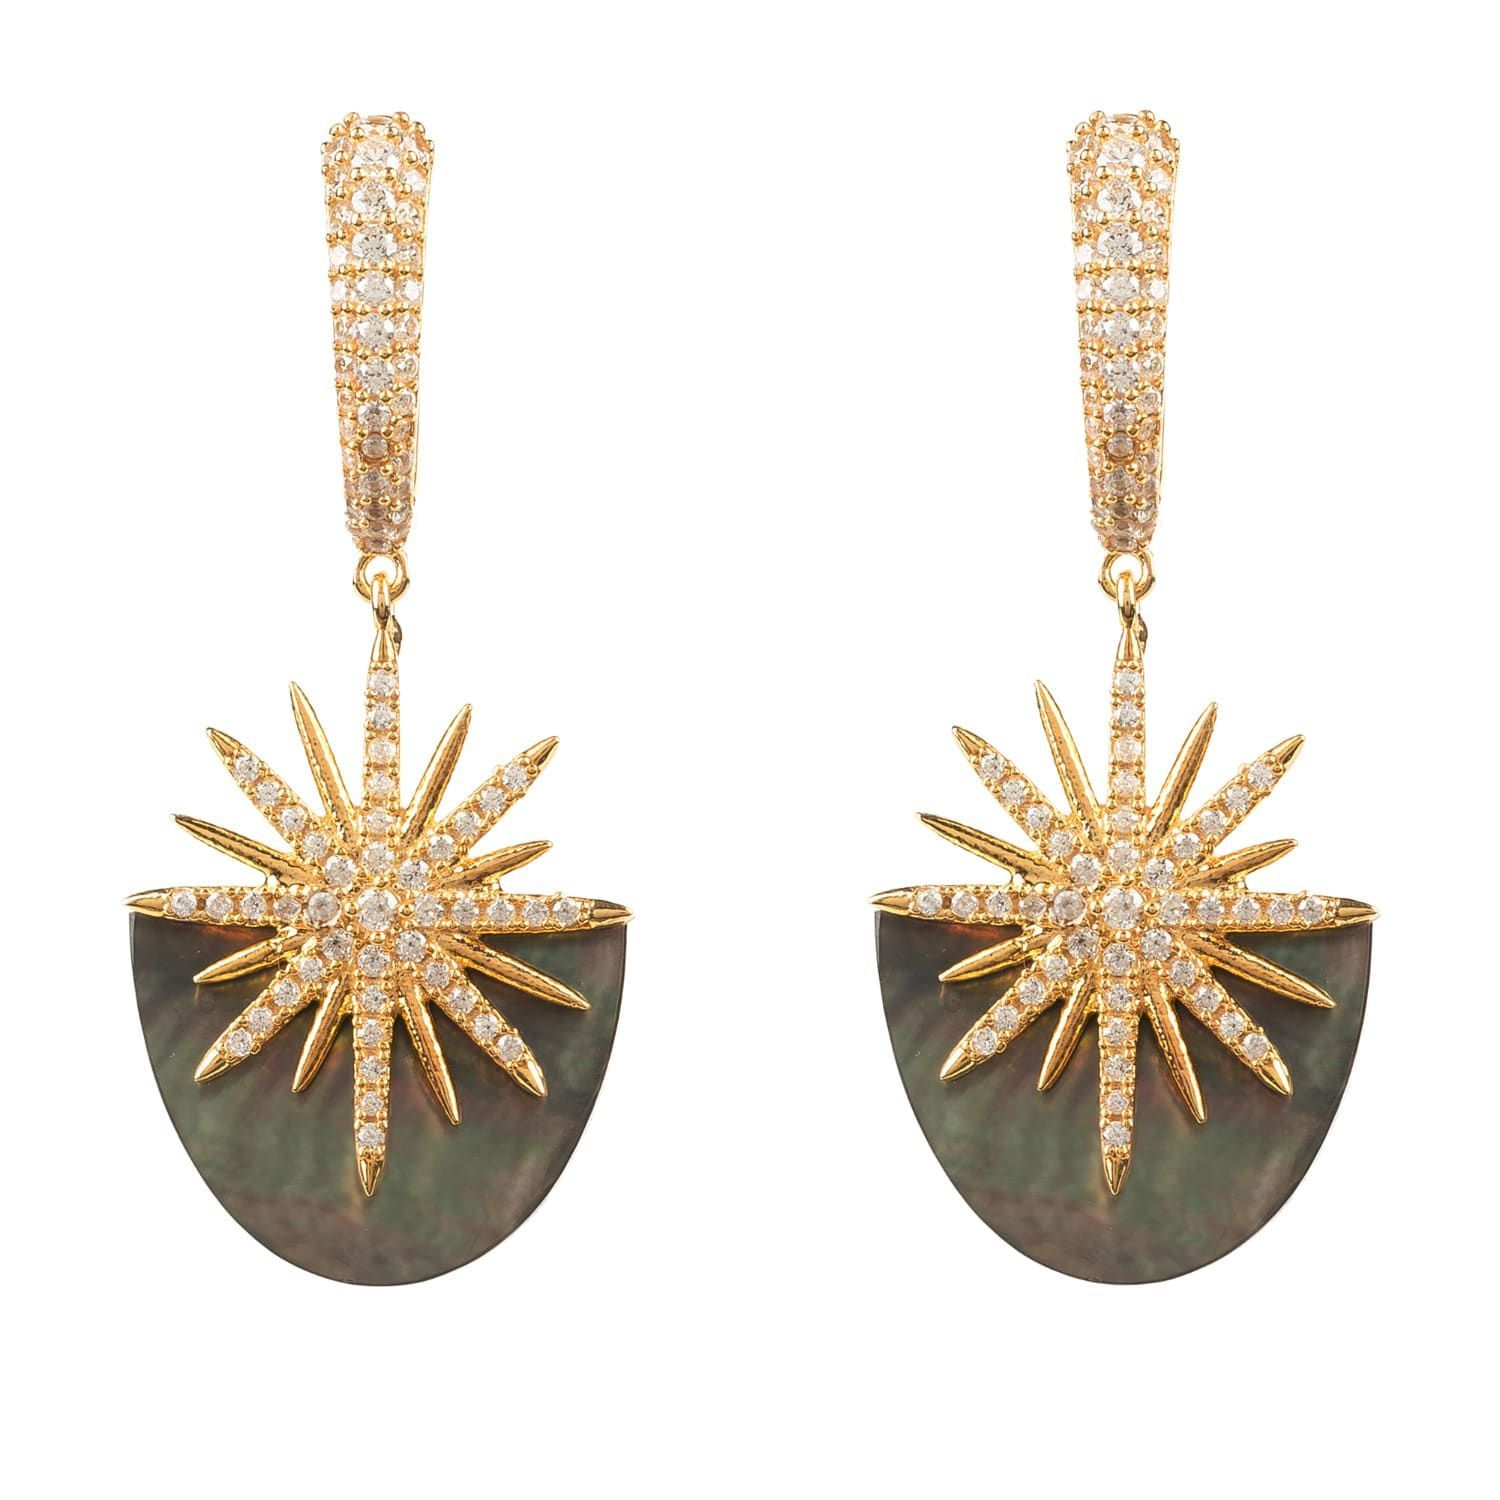 Shining like a firework this star burst earring uses natural mother